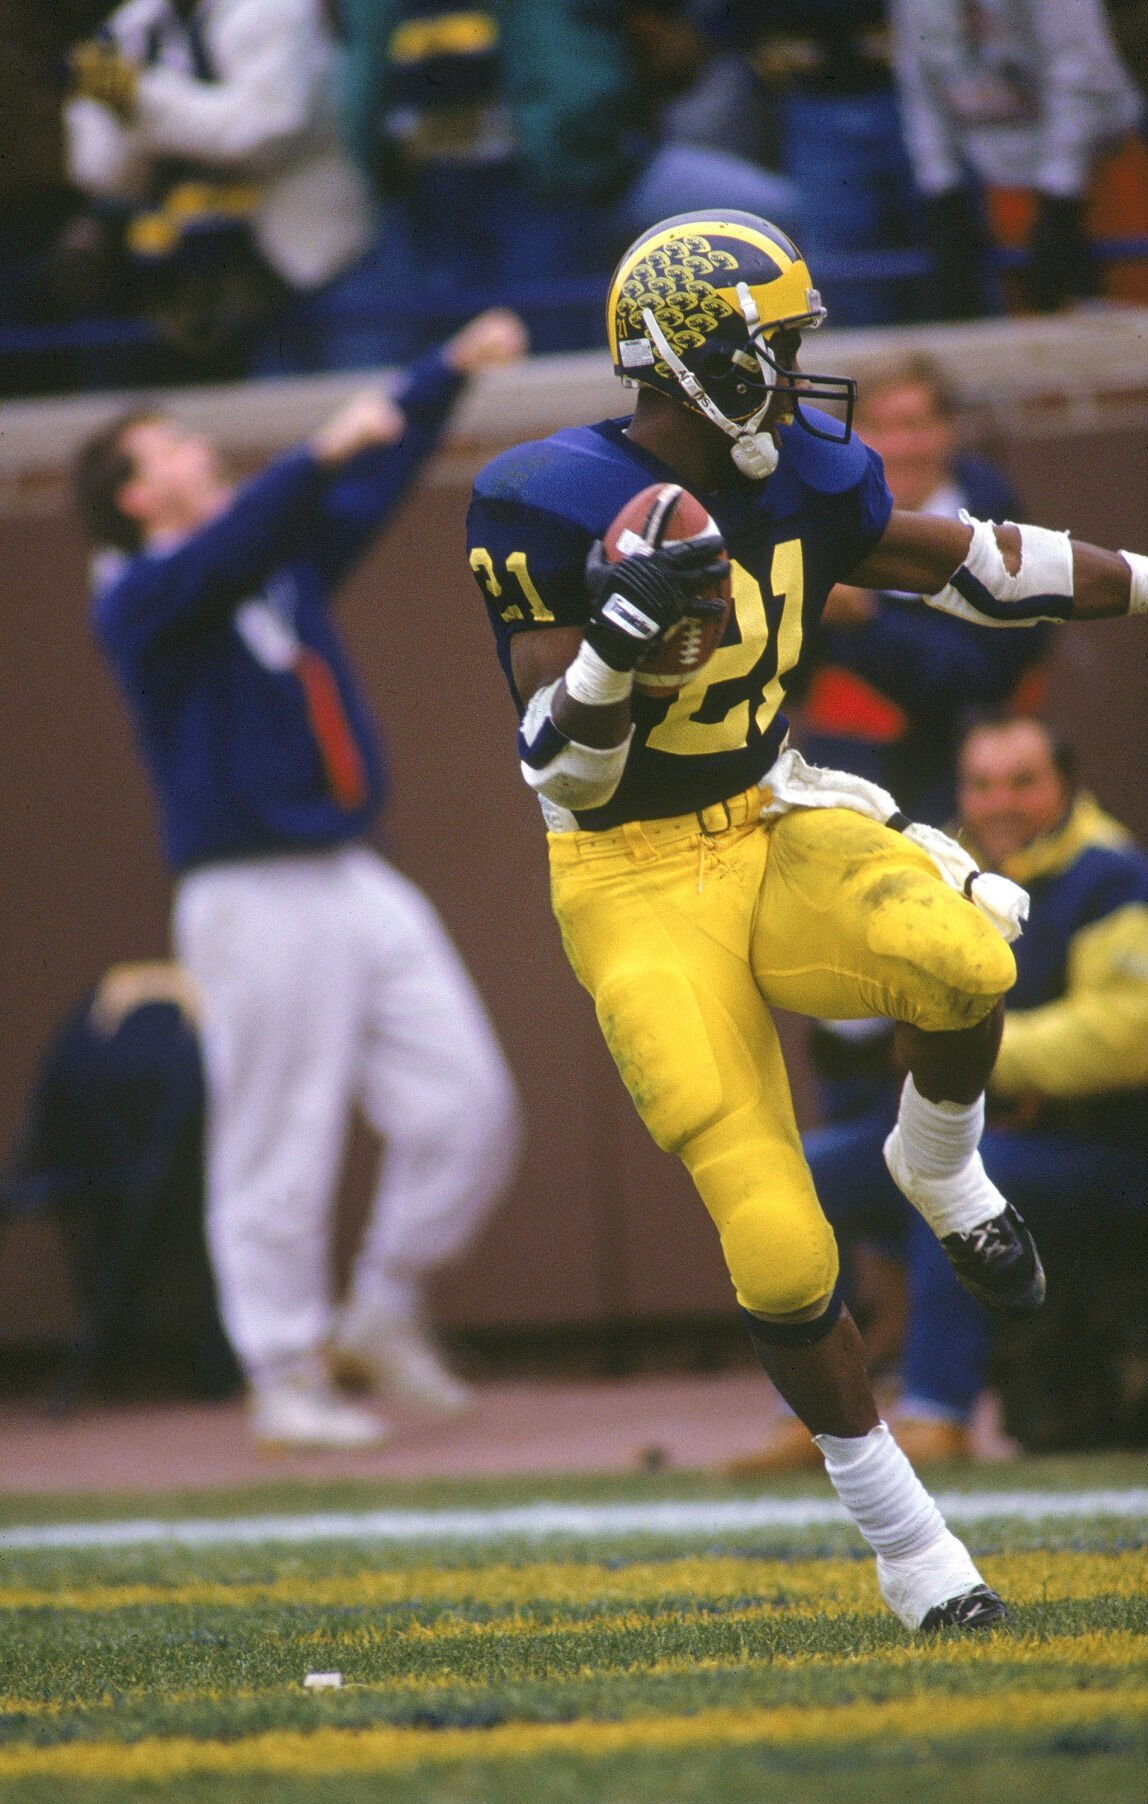 In this file photo, Desmond Howard of the Michigan Wolverines runs in the the' Heisman' pose right after making a 93 yard touchdown against Ohio State circa 1991 in Ann Arbor, Michigan.